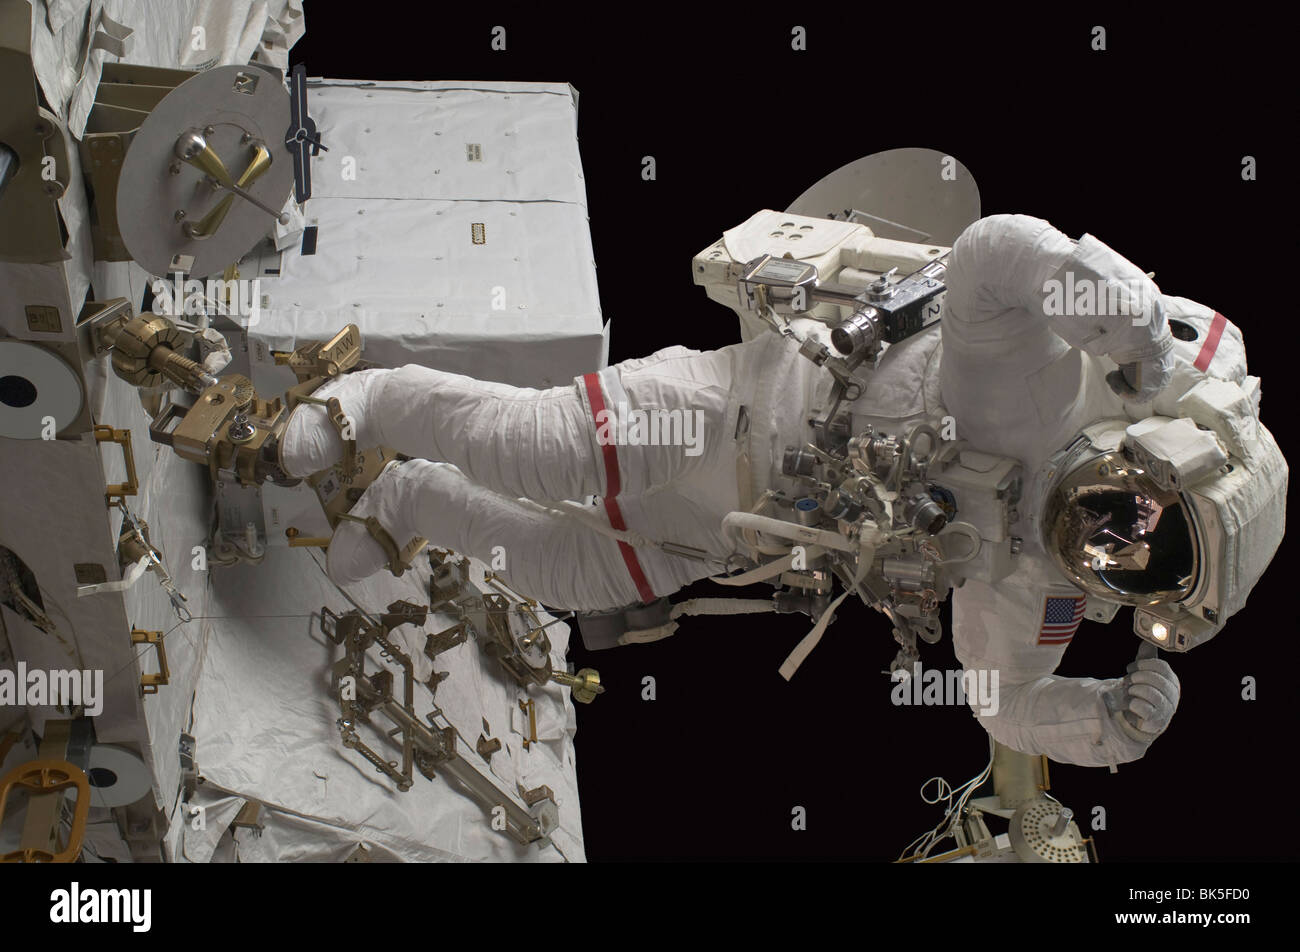 Astronaut participates in a session of extravehicular activity (EVA), International Space Station Stock Photo